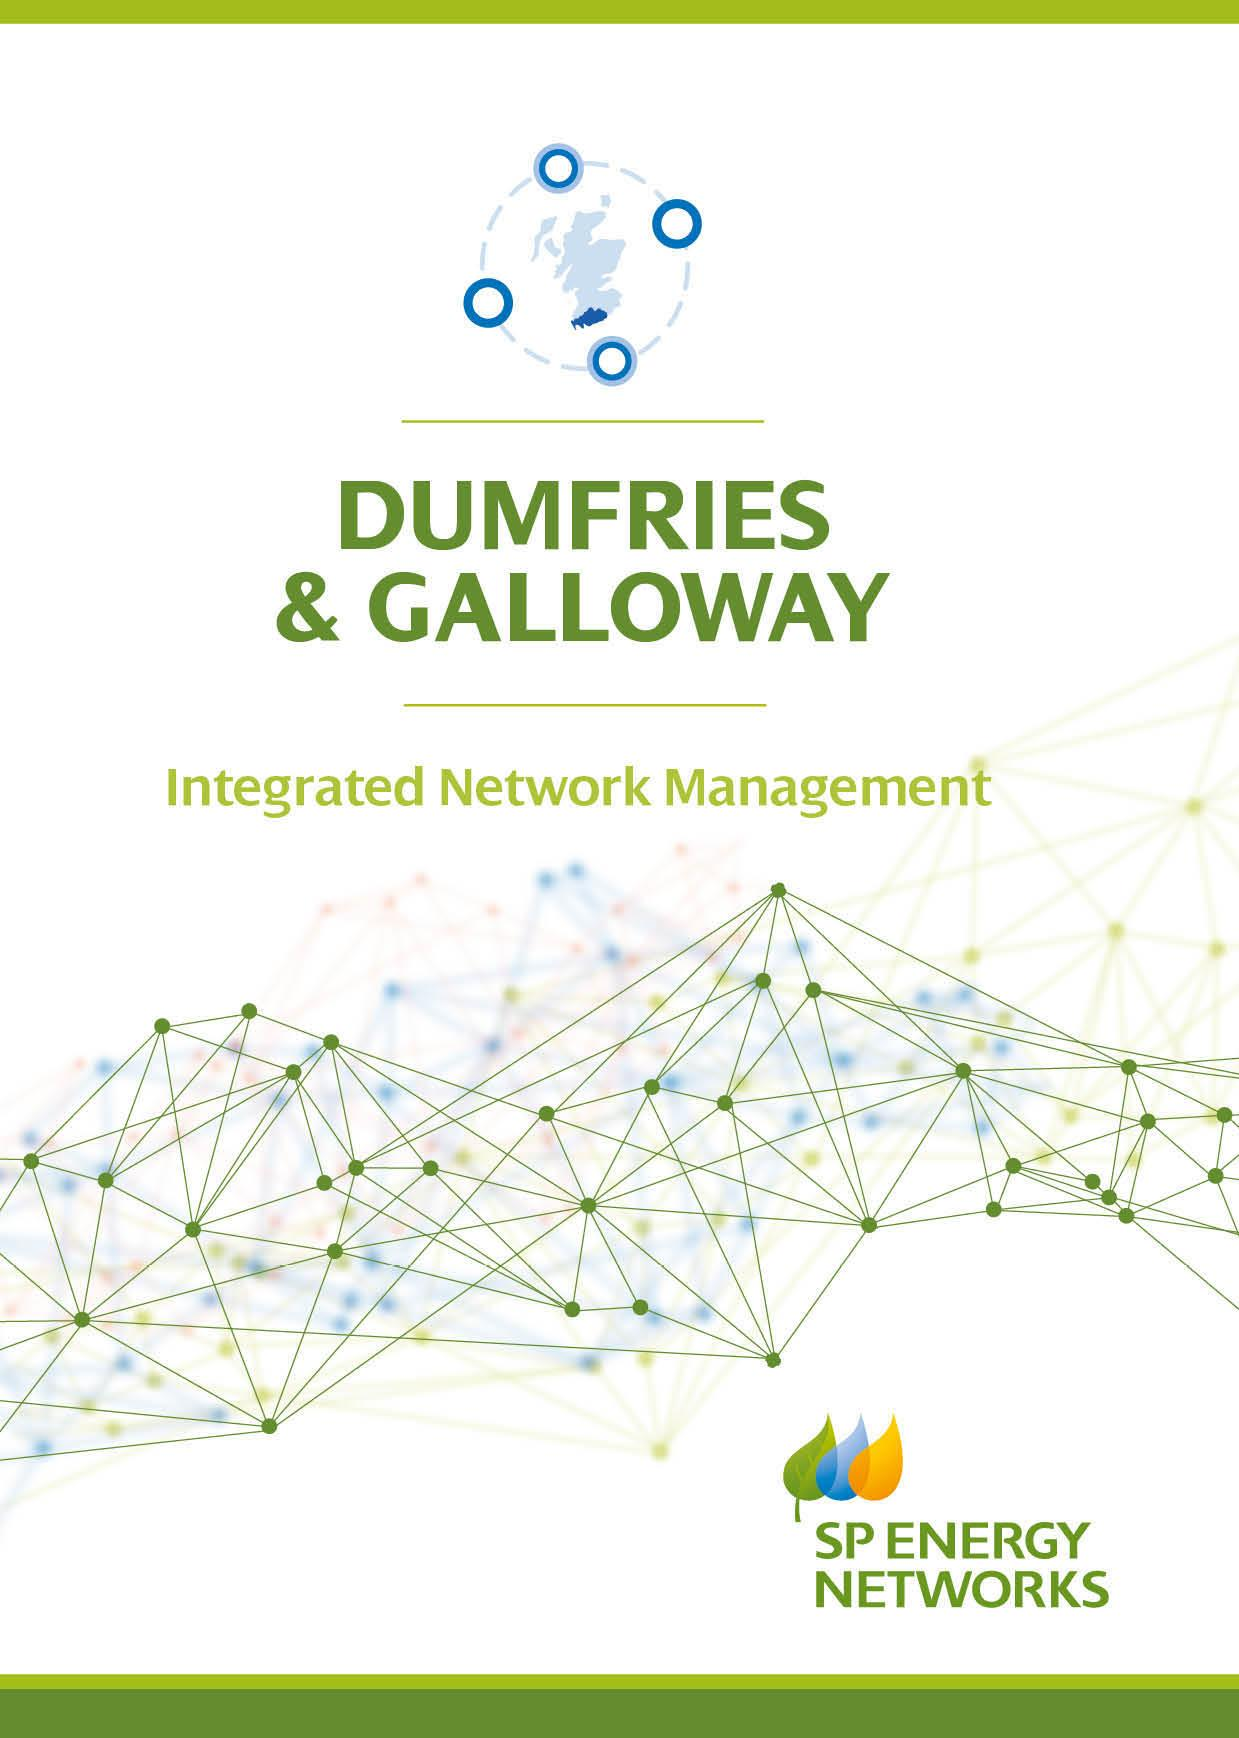 sp energy networks annual report